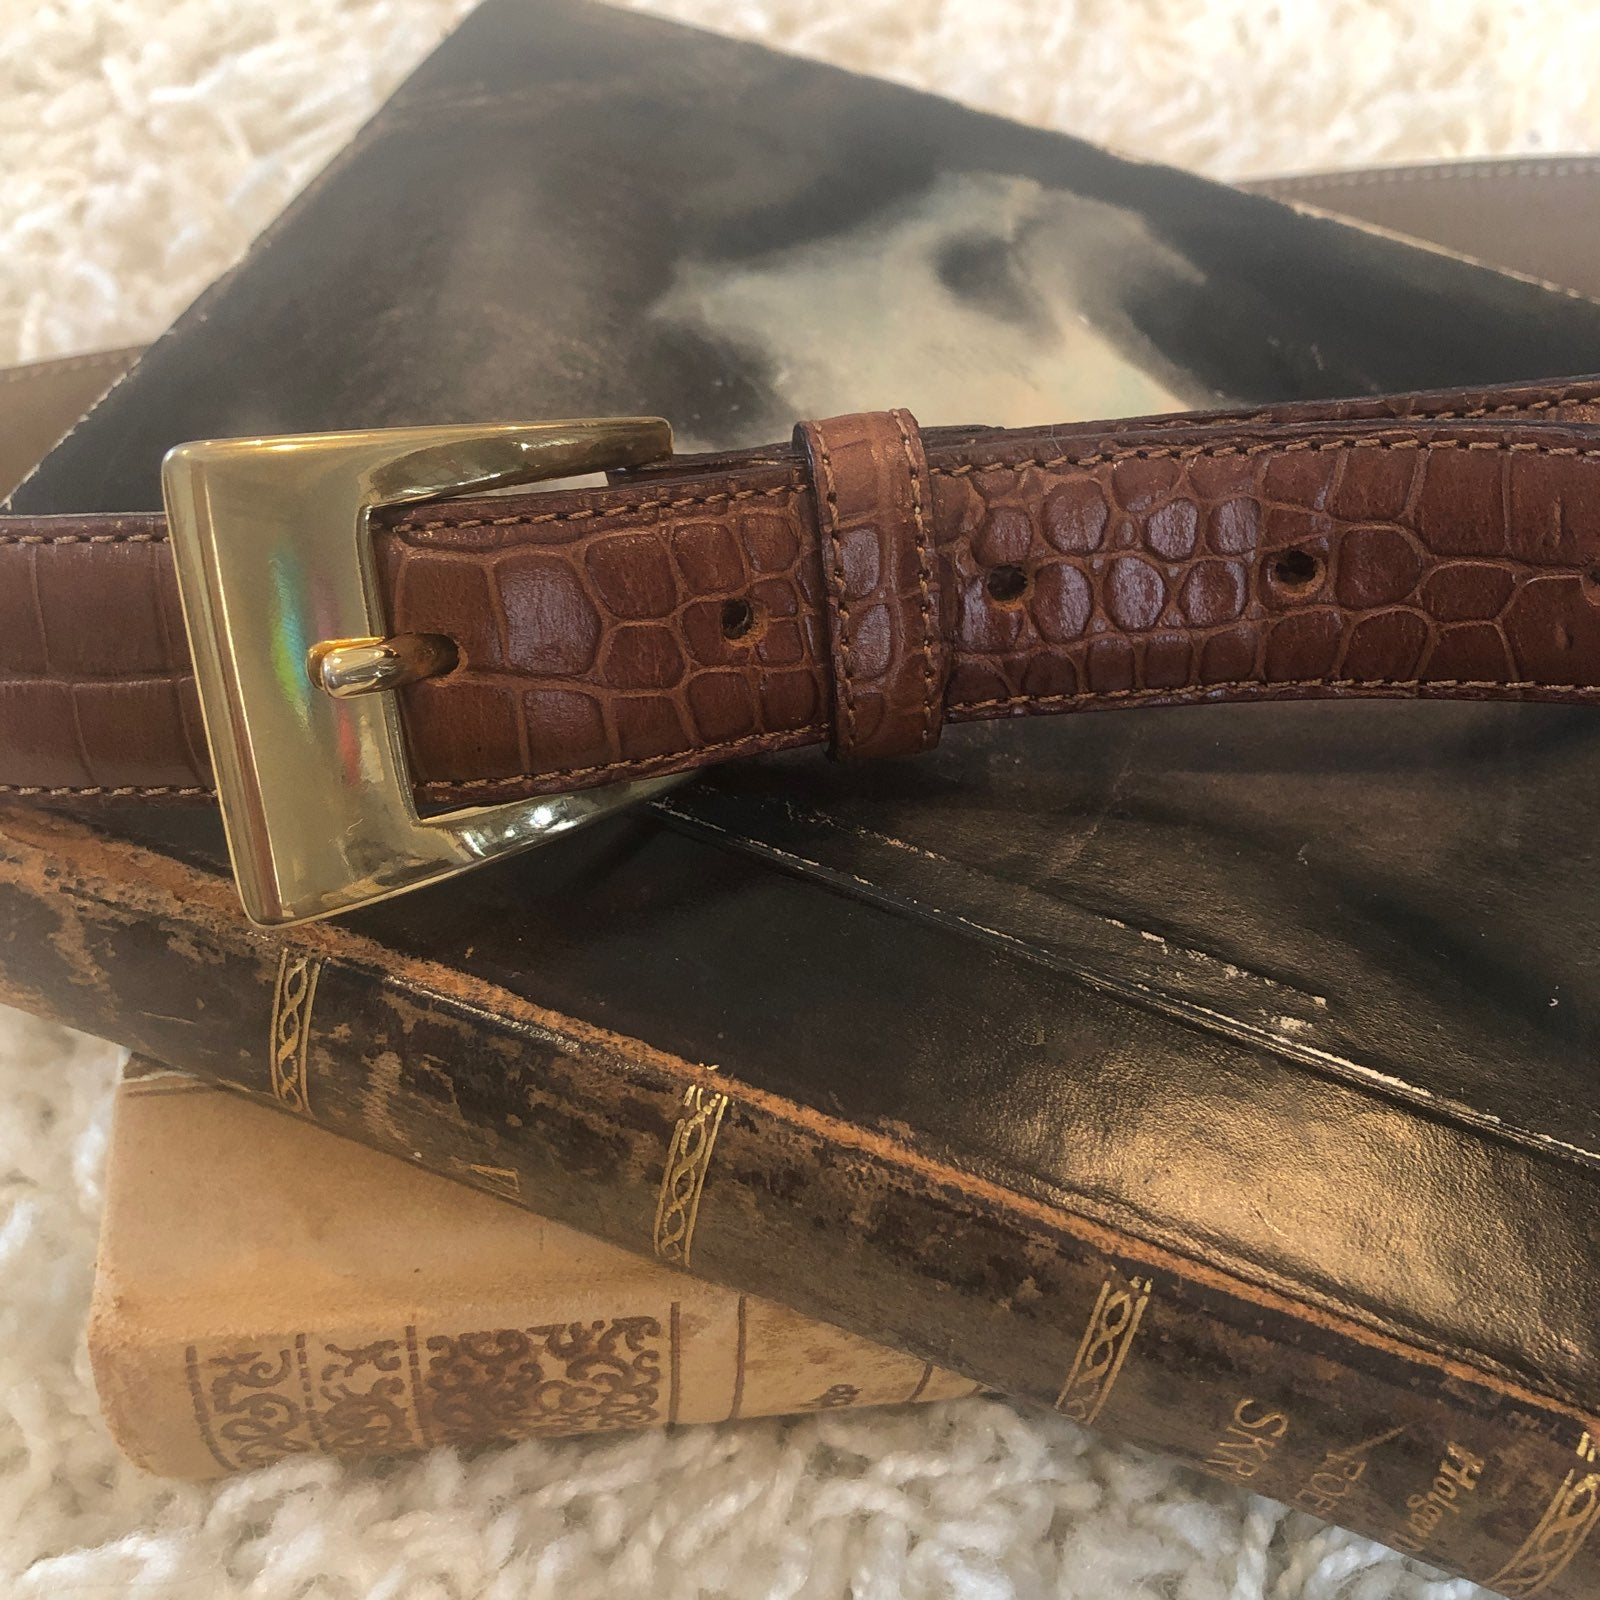 Talbots brown croc-embossed leather belt